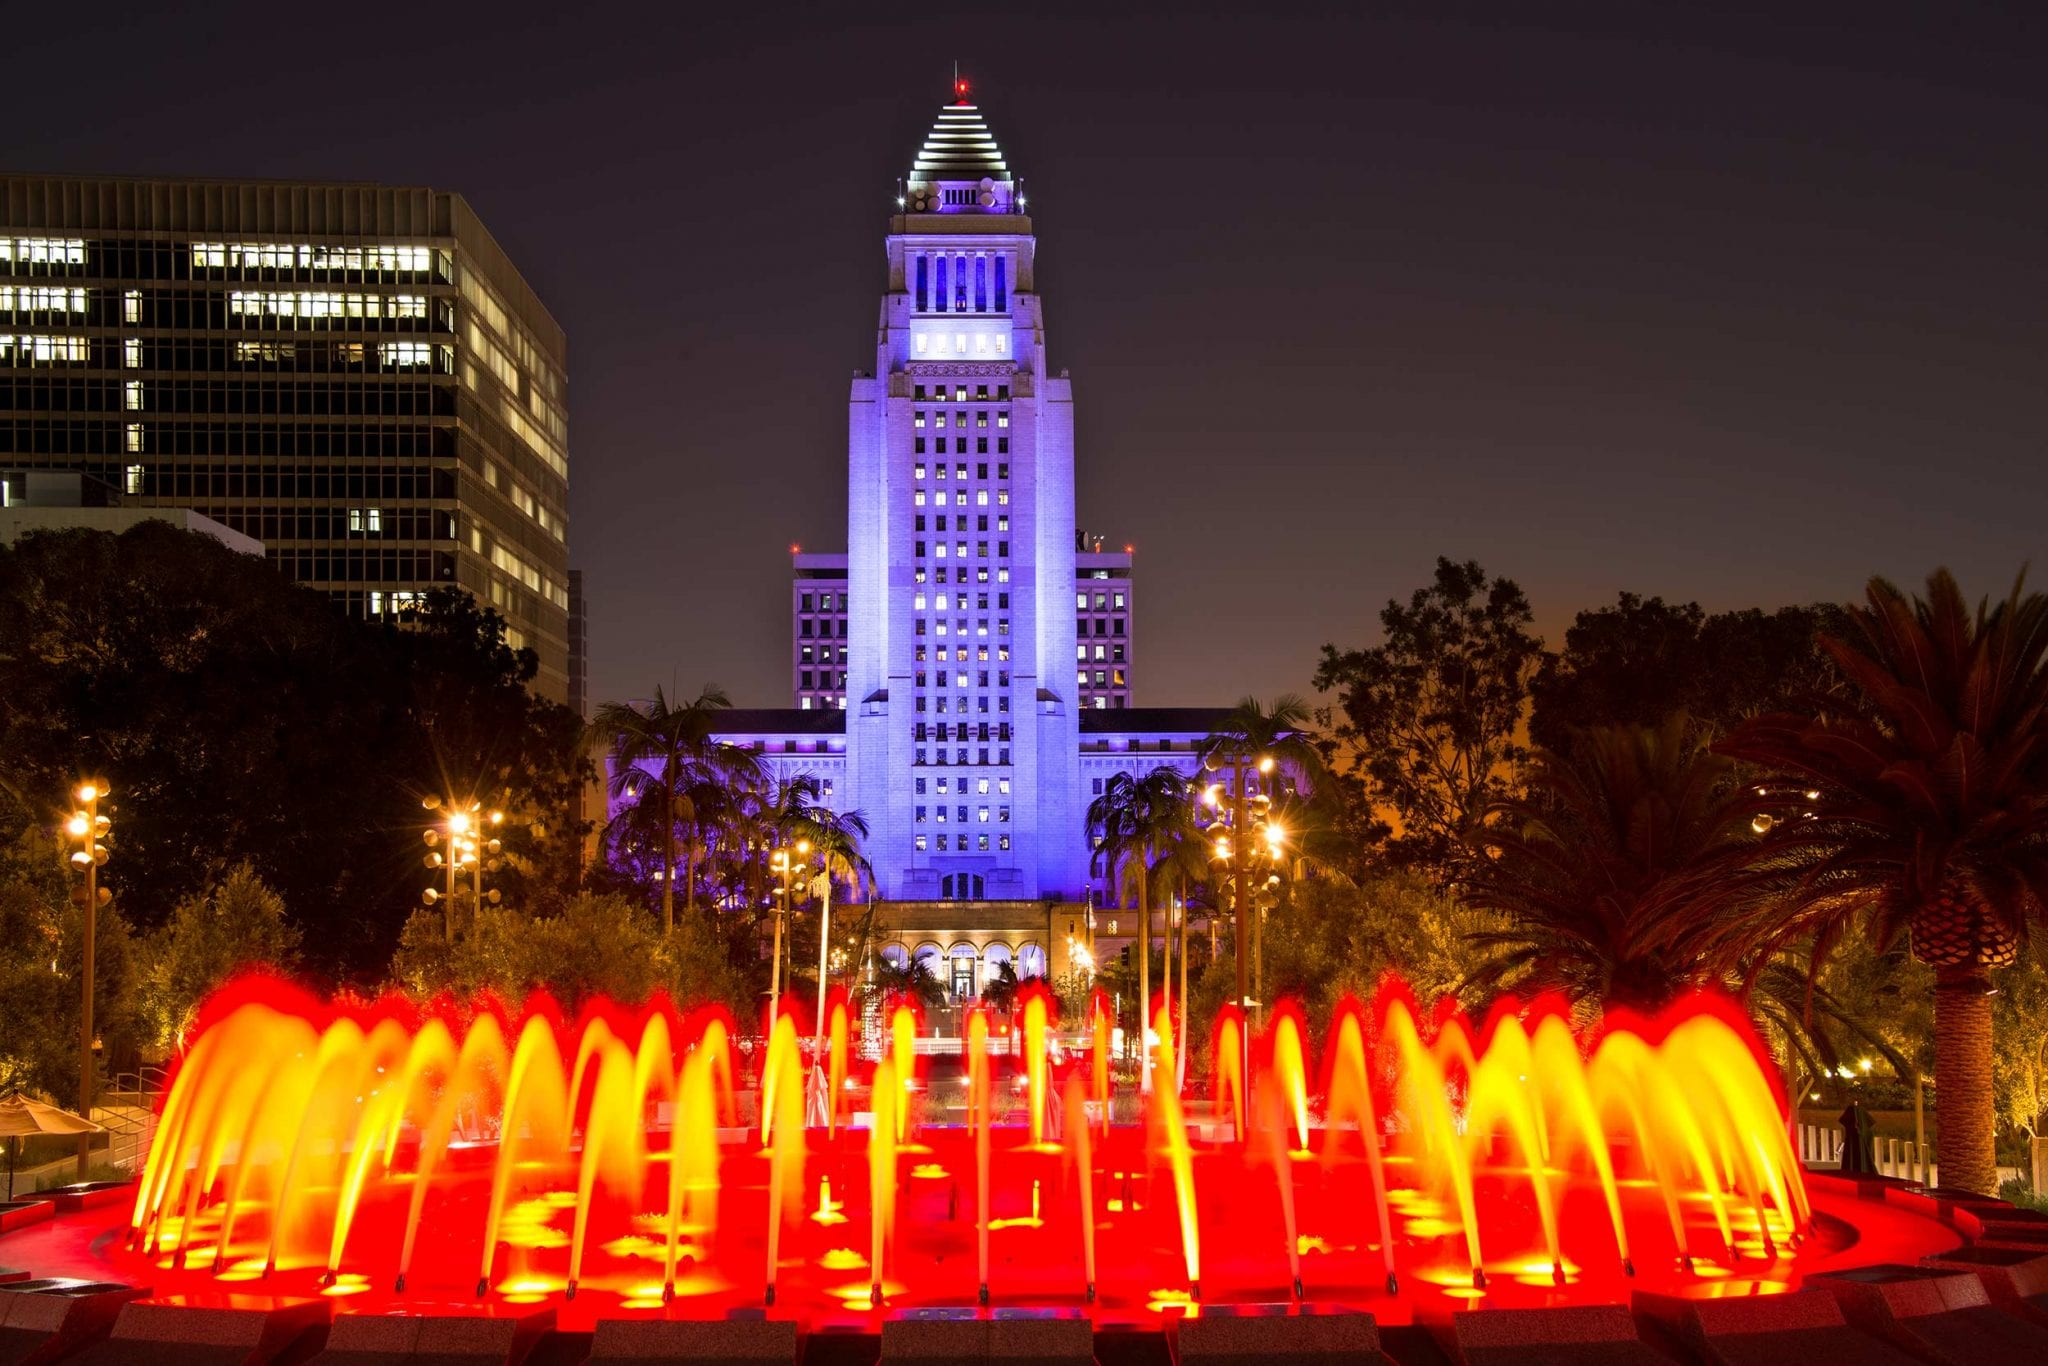 la city hall night lights